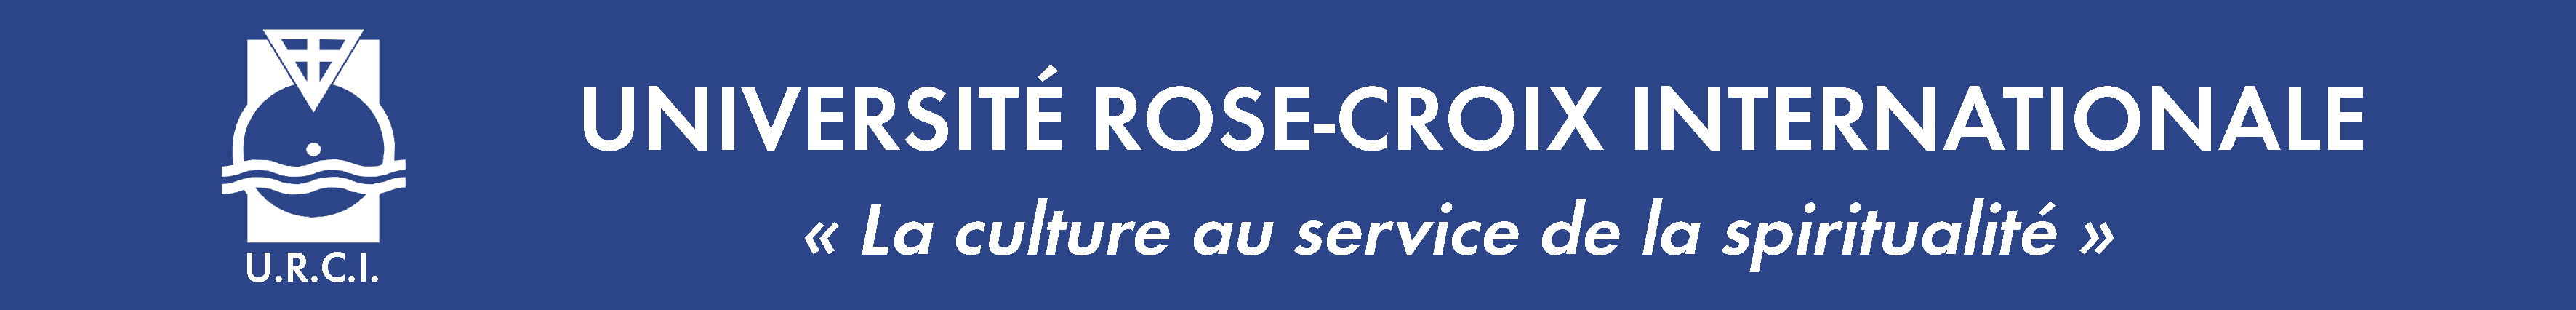 Université Rose-Croix Internationale (URCI)